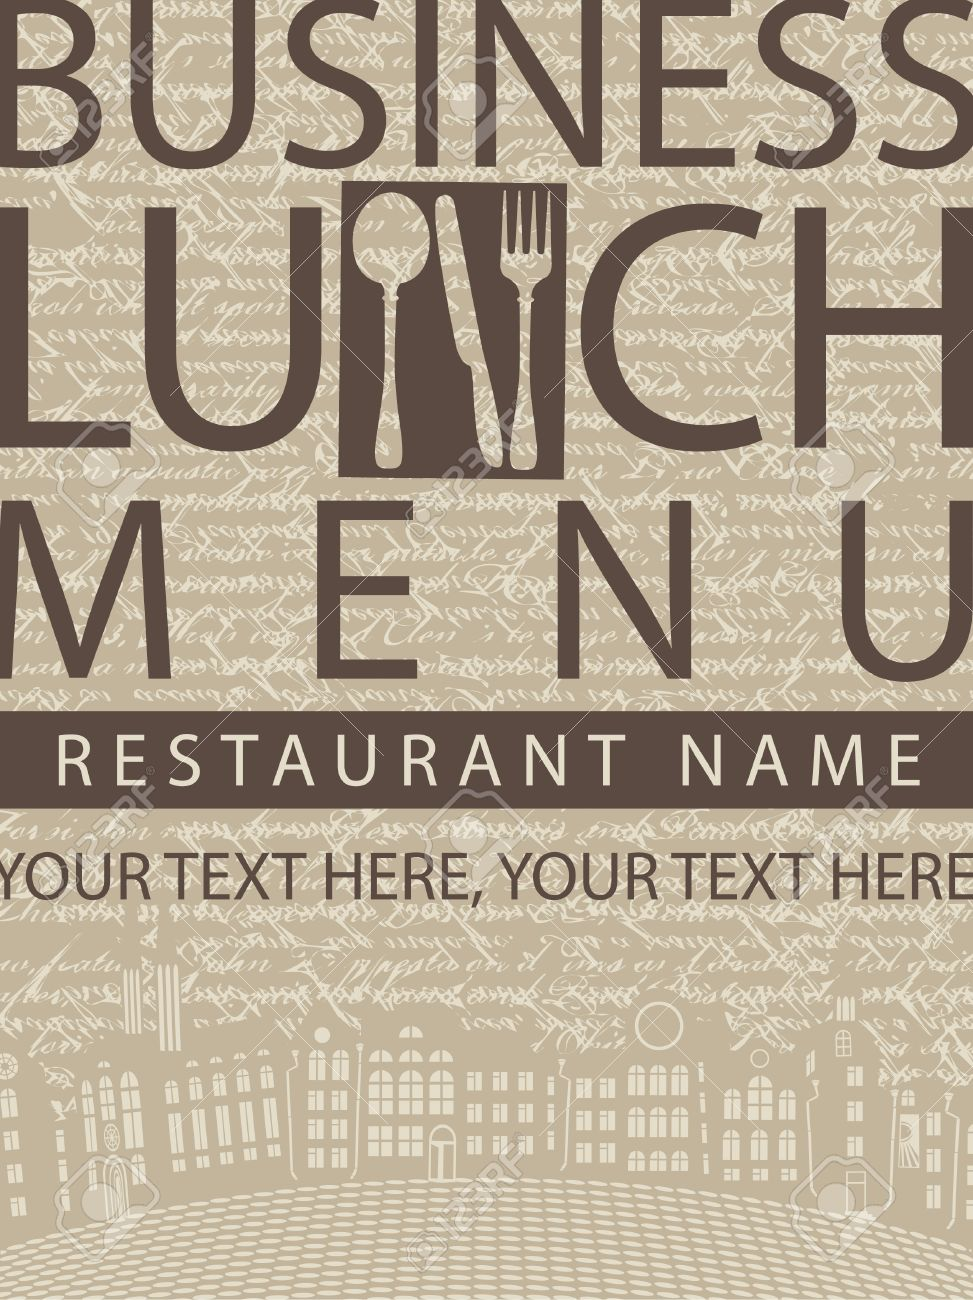 business lunch menu sign on a background of the manuscript and